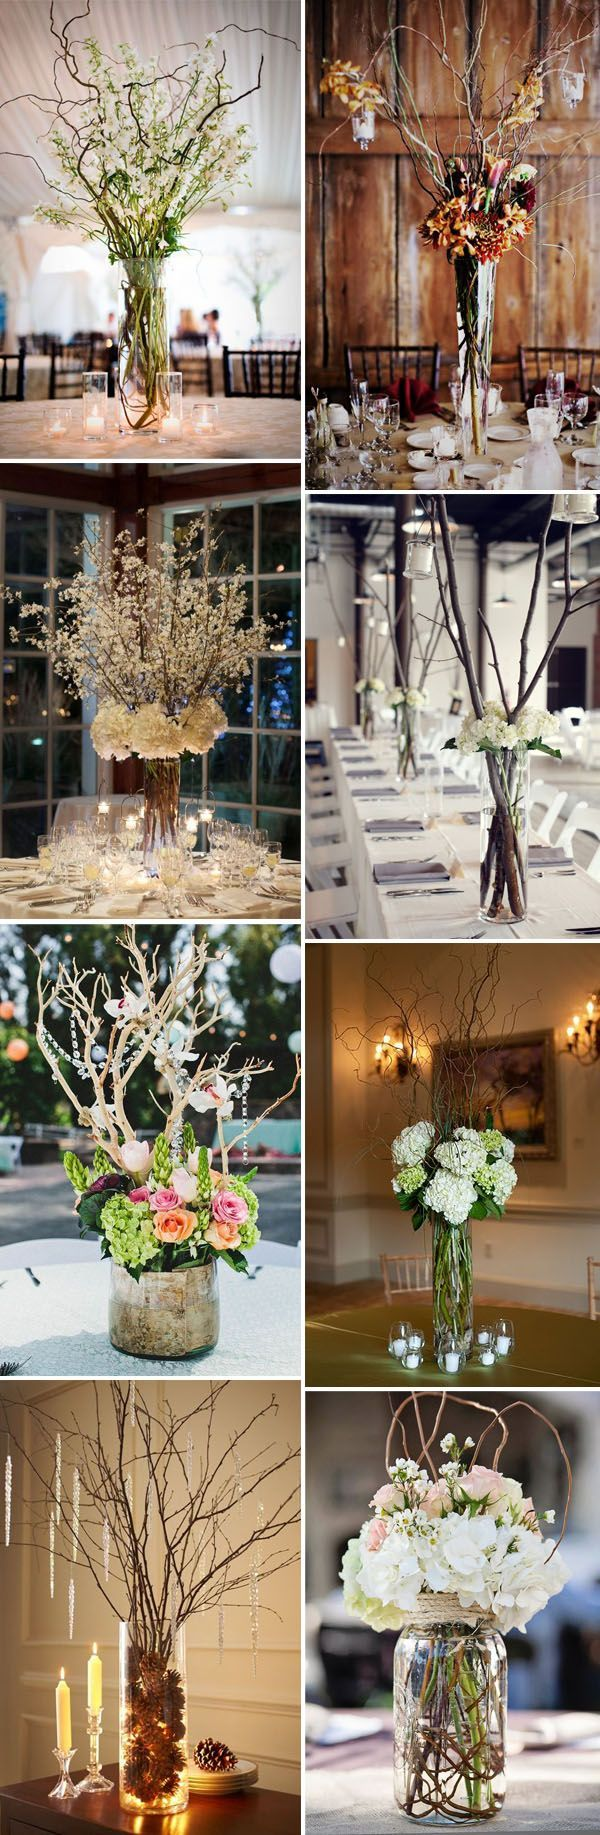 Easy DIY Branch,Twig and Floral Vase Wedding Centerpieces Ideas